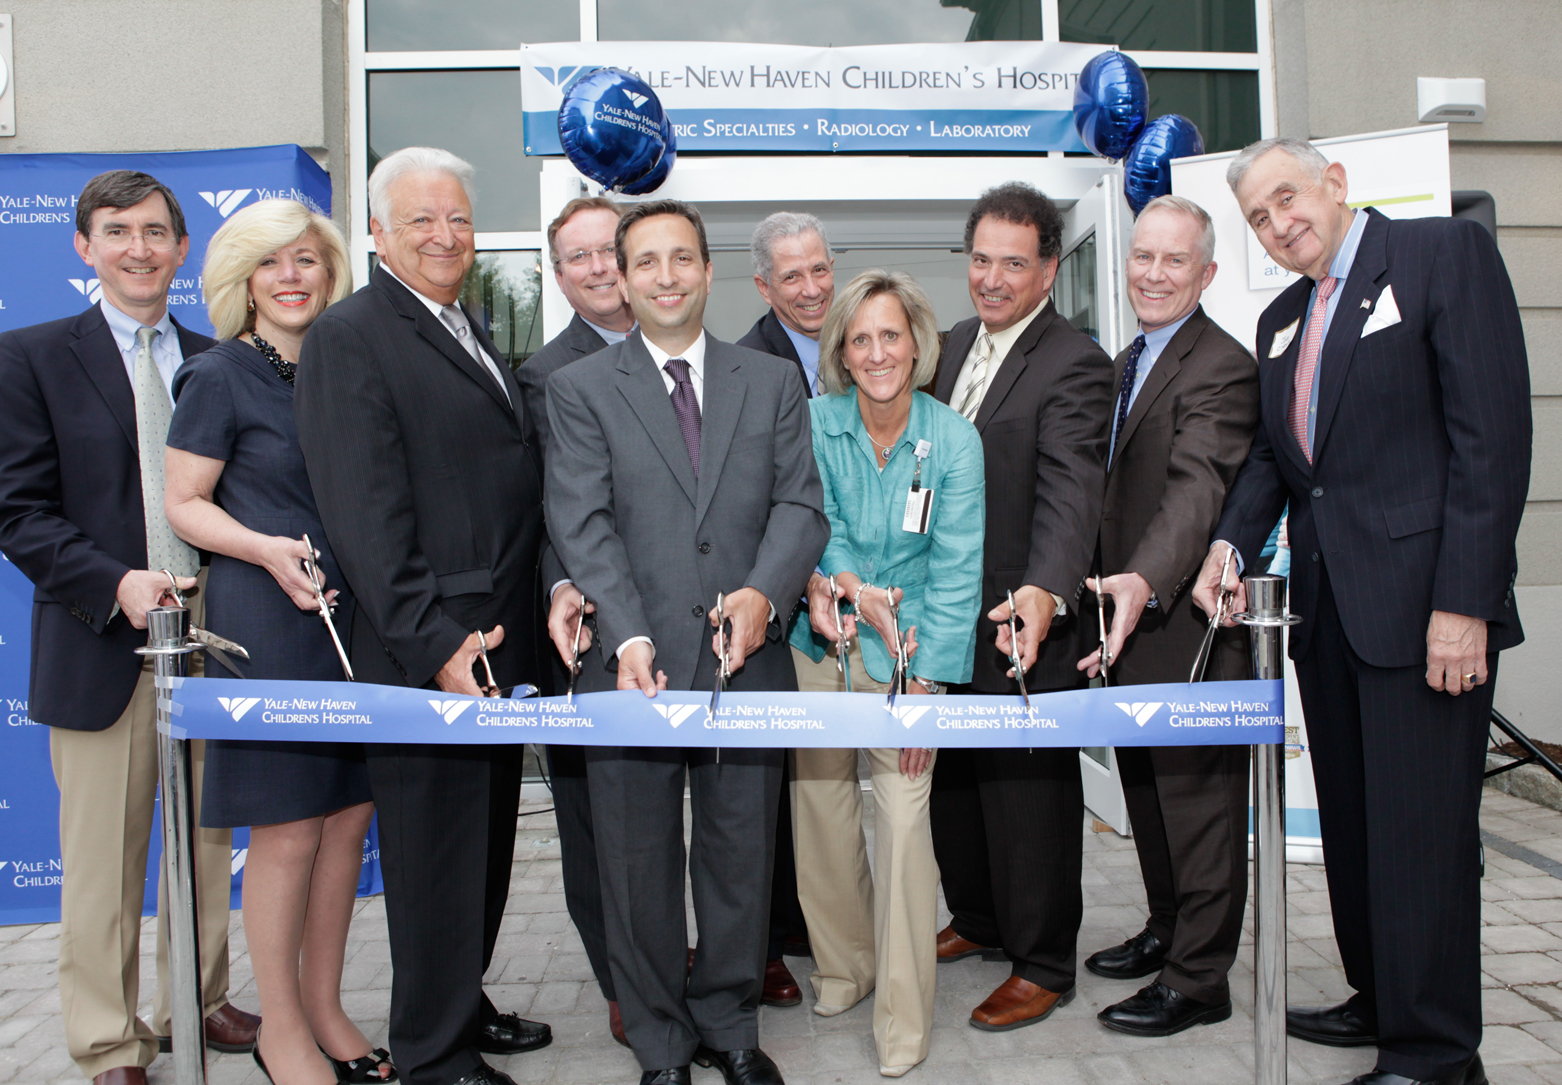 <a href='http://nymetroparents.com/listing/Yale-New-Haven-Children-s-Hospital-'>Yale-New Haven Children's Hospital </a>Ribbon Cutting Ceremony.